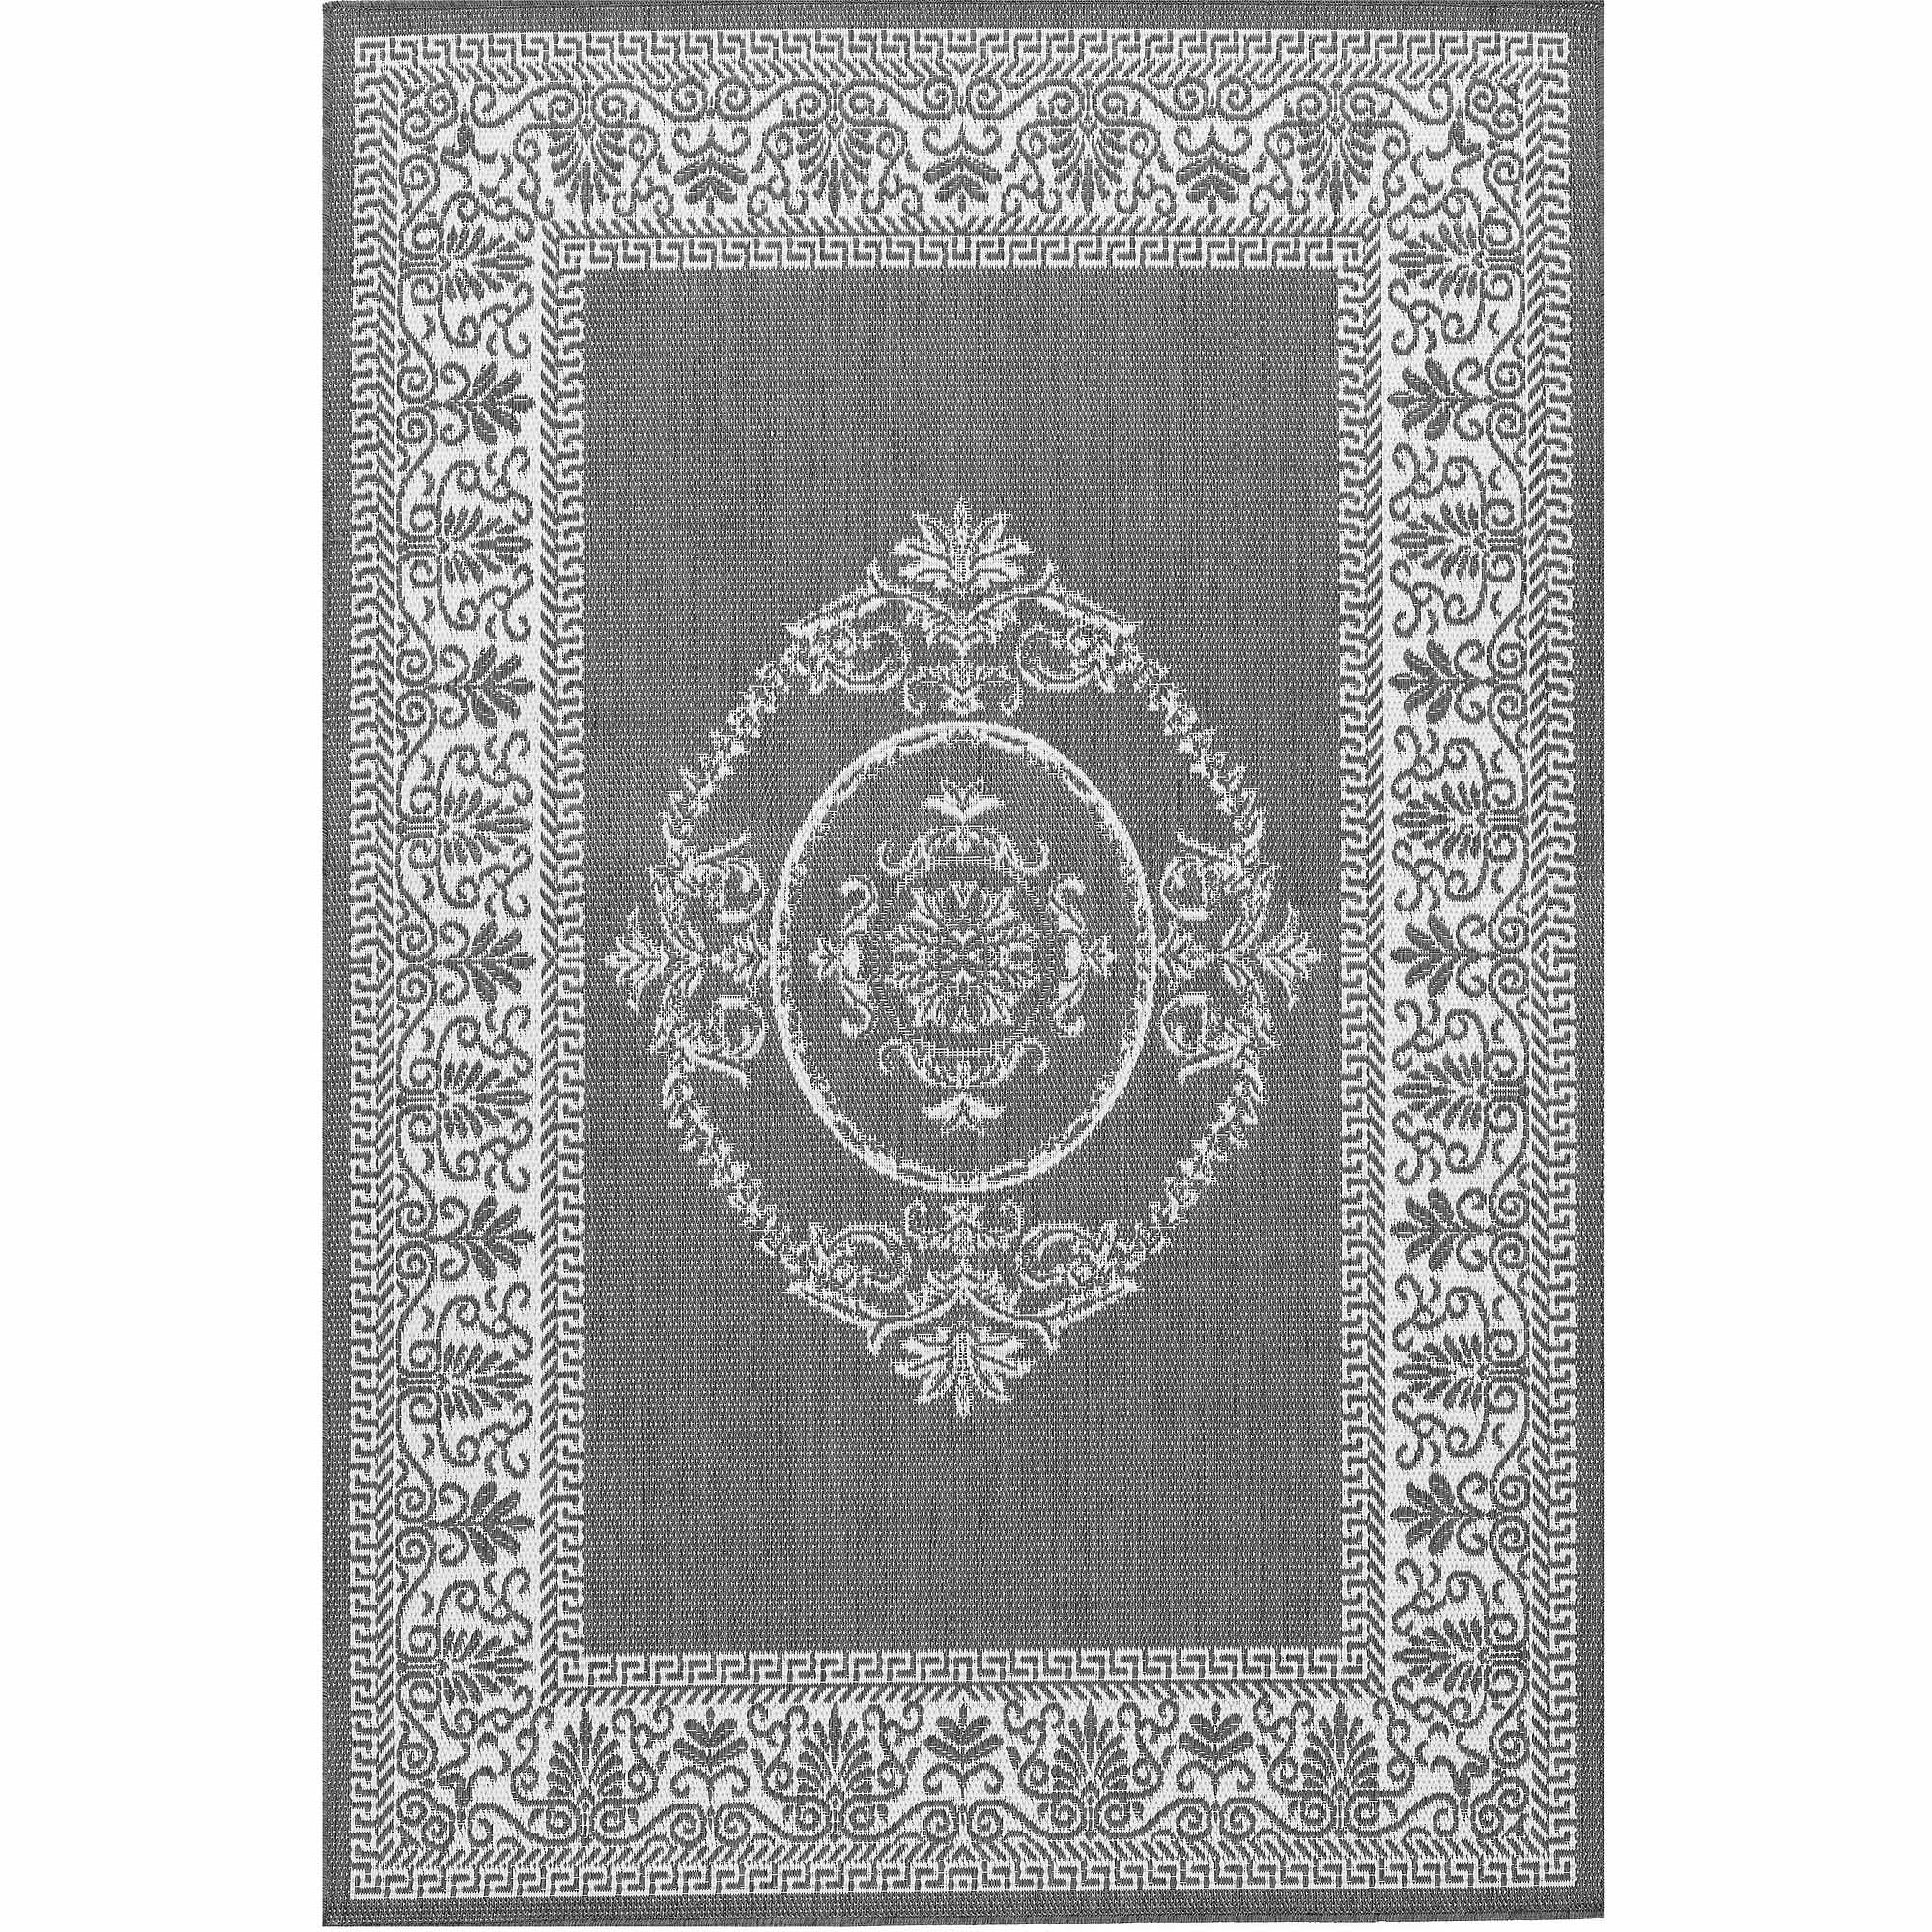 Couristan Recife Antique Medallion Rug, Grey/White